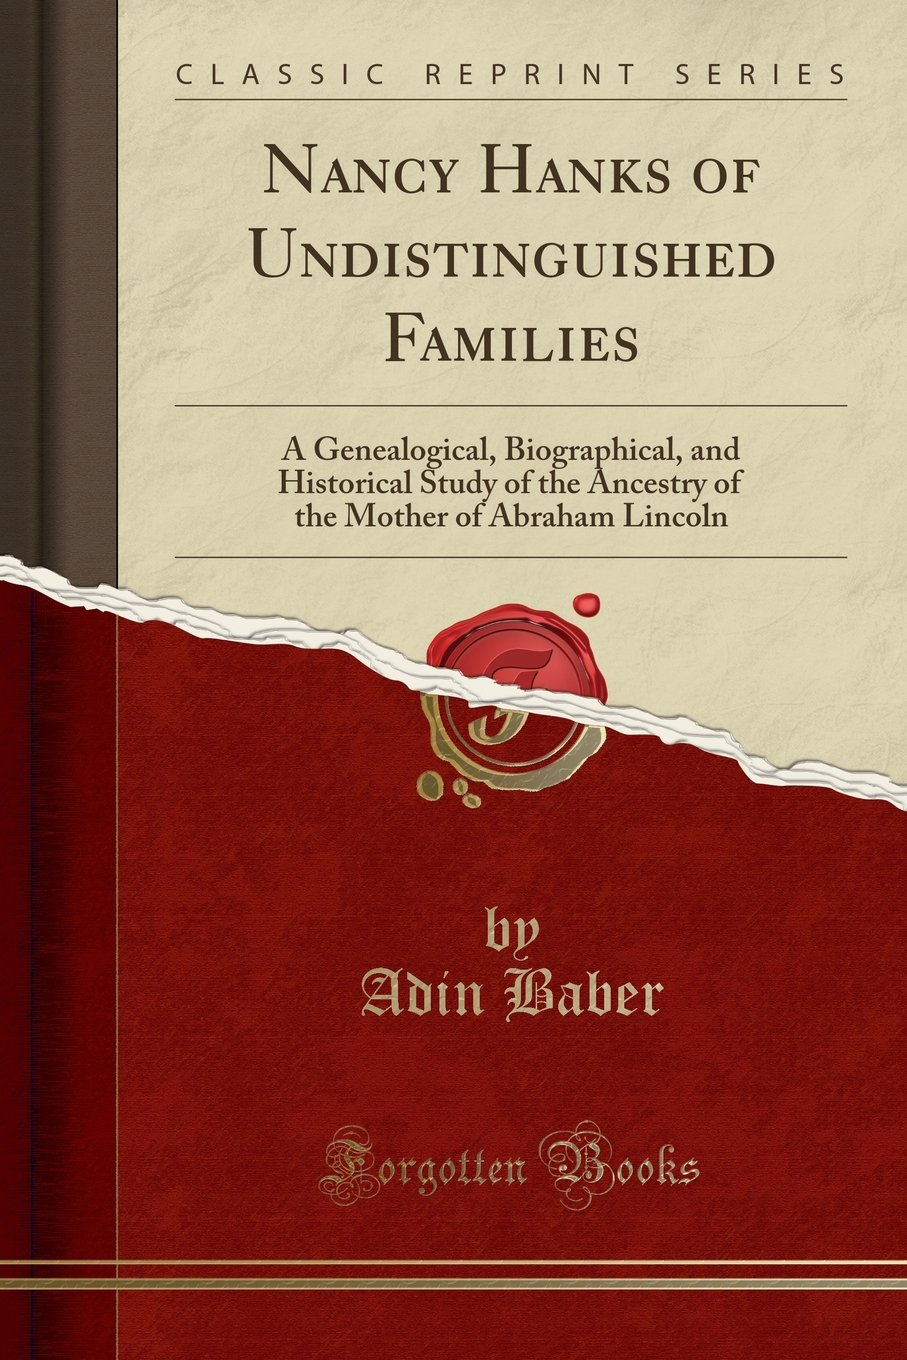 Download Nancy Hanks of Undistinguished Families: A Genealogical, Biographical, and Historical Study of the Ancestry of the Mother of Abraham Lincoln (Classic Reprint) ebook